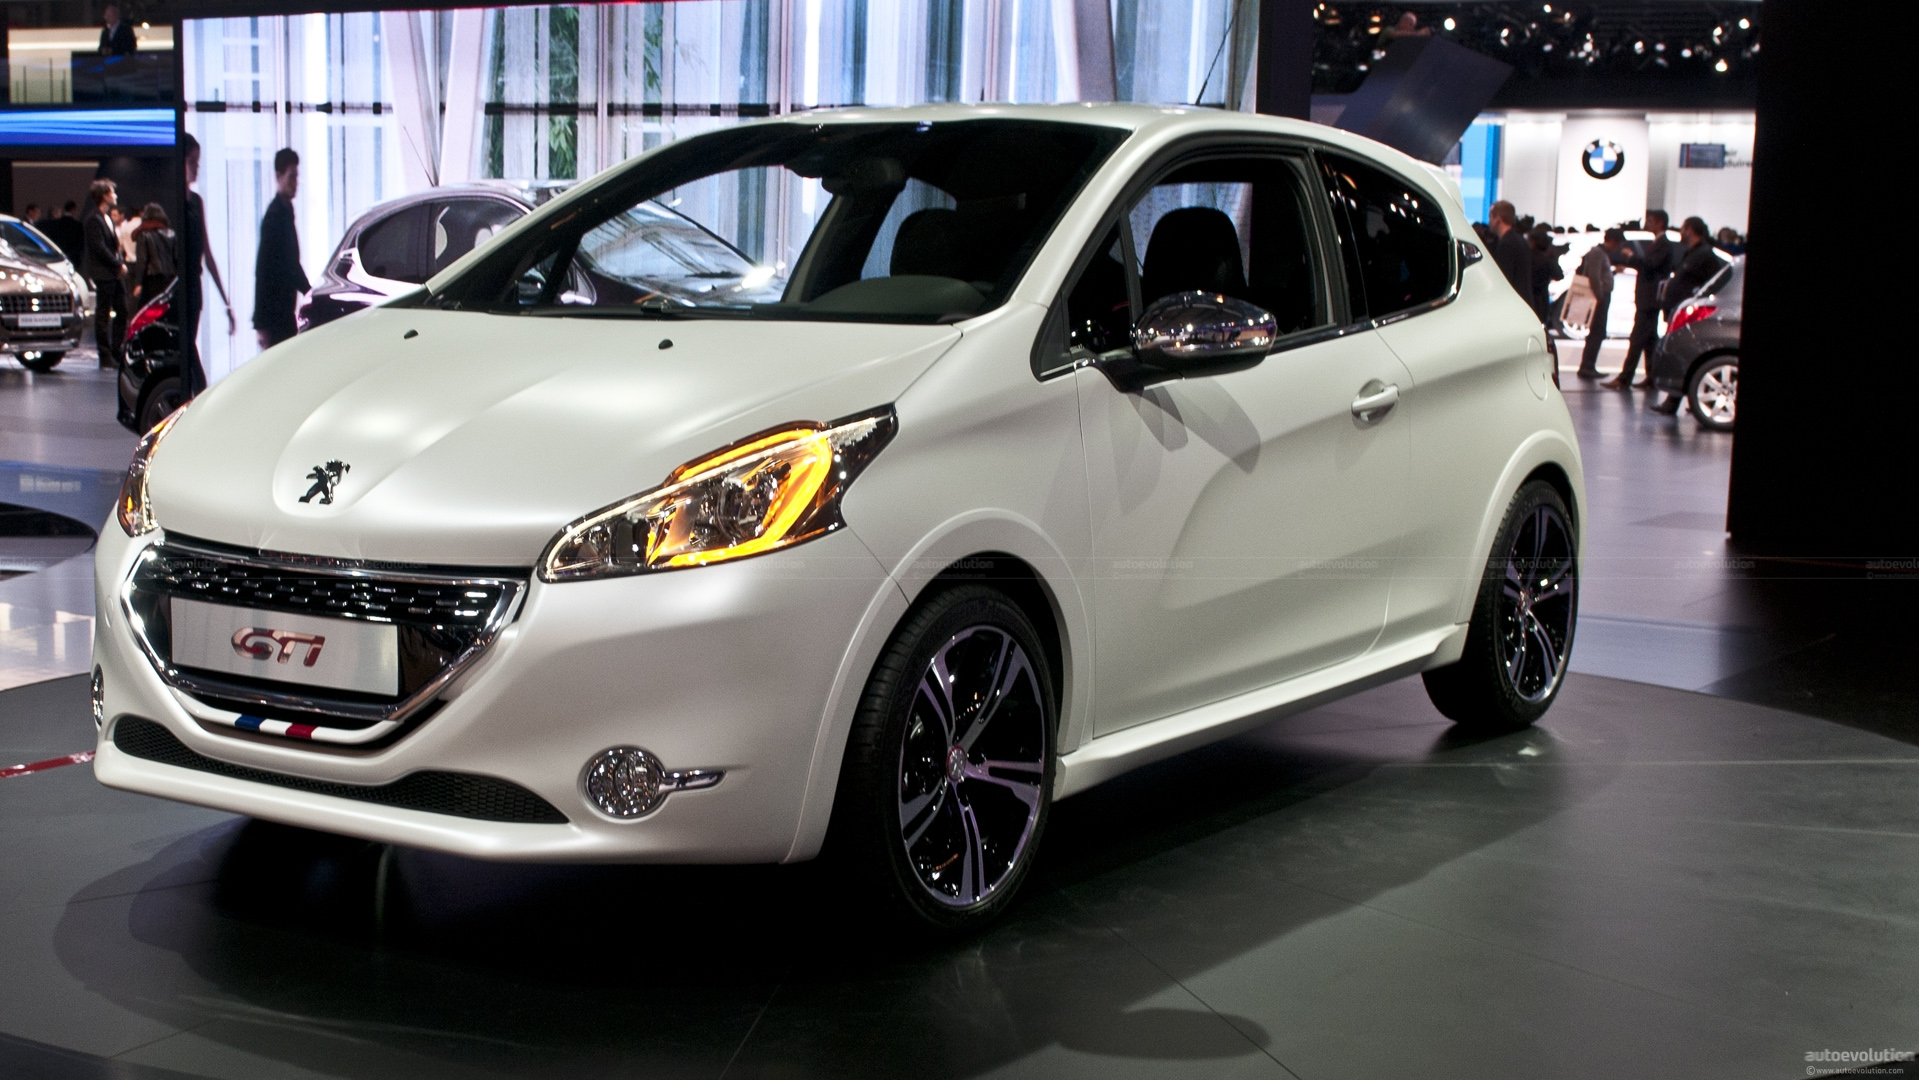 Paris 2012: Peugeot 208 GTi [Live Photos]